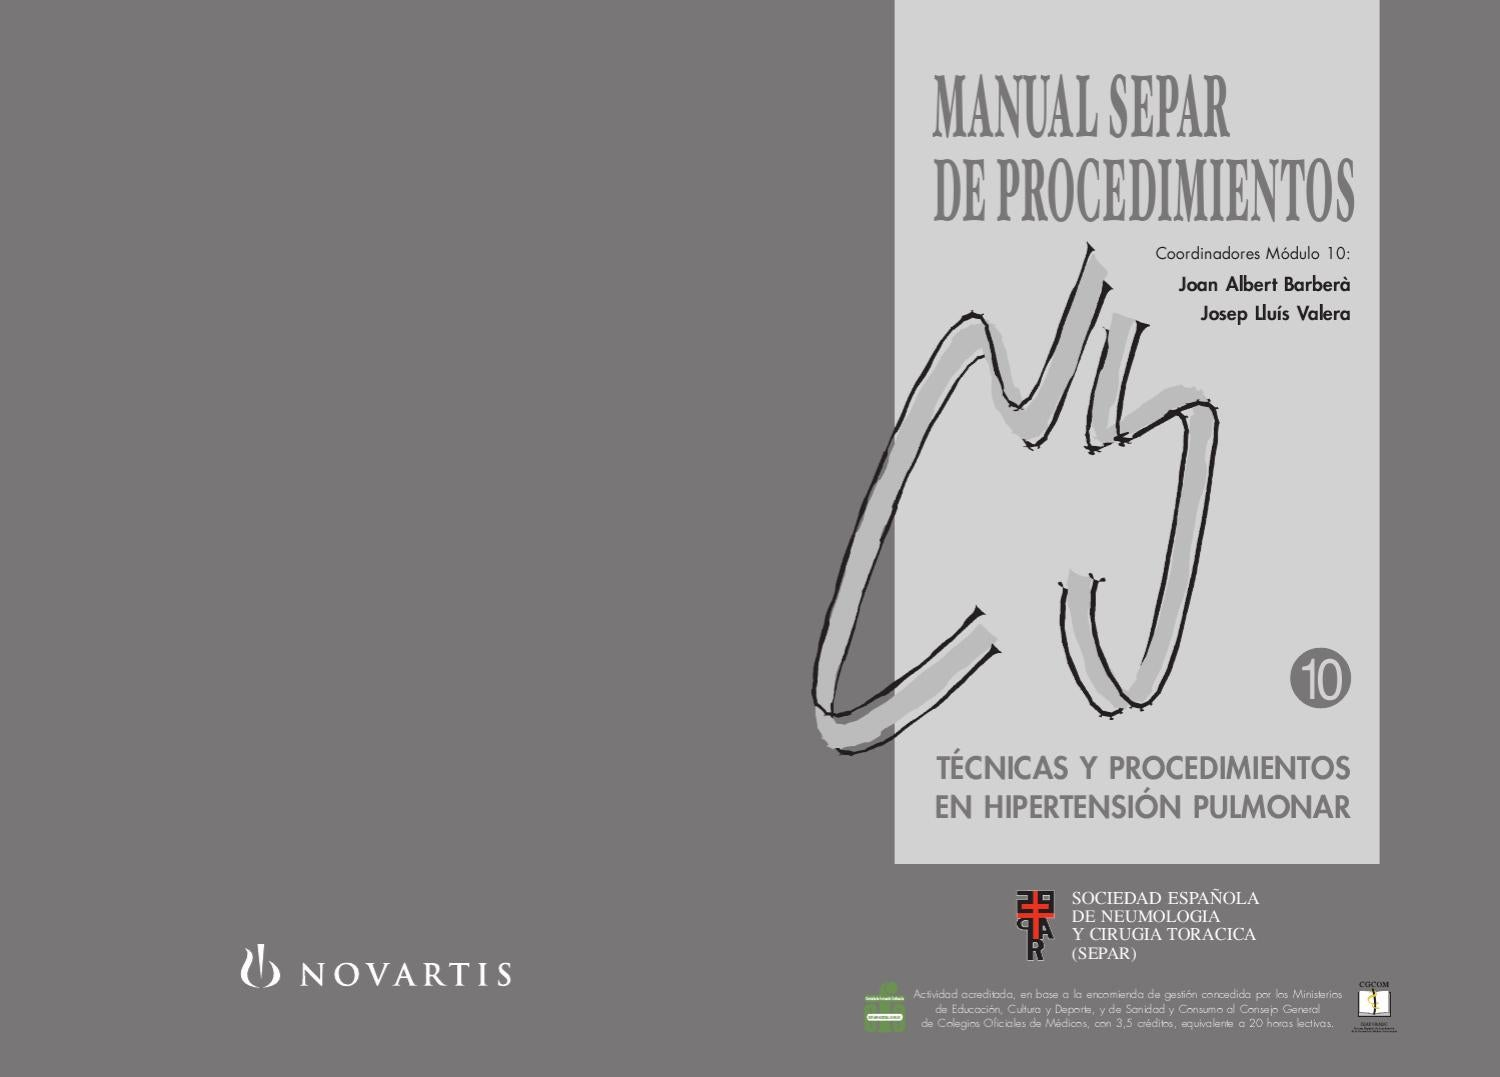 Manual de Procedimientos SEPAR, 10. by SEPAR - issuu